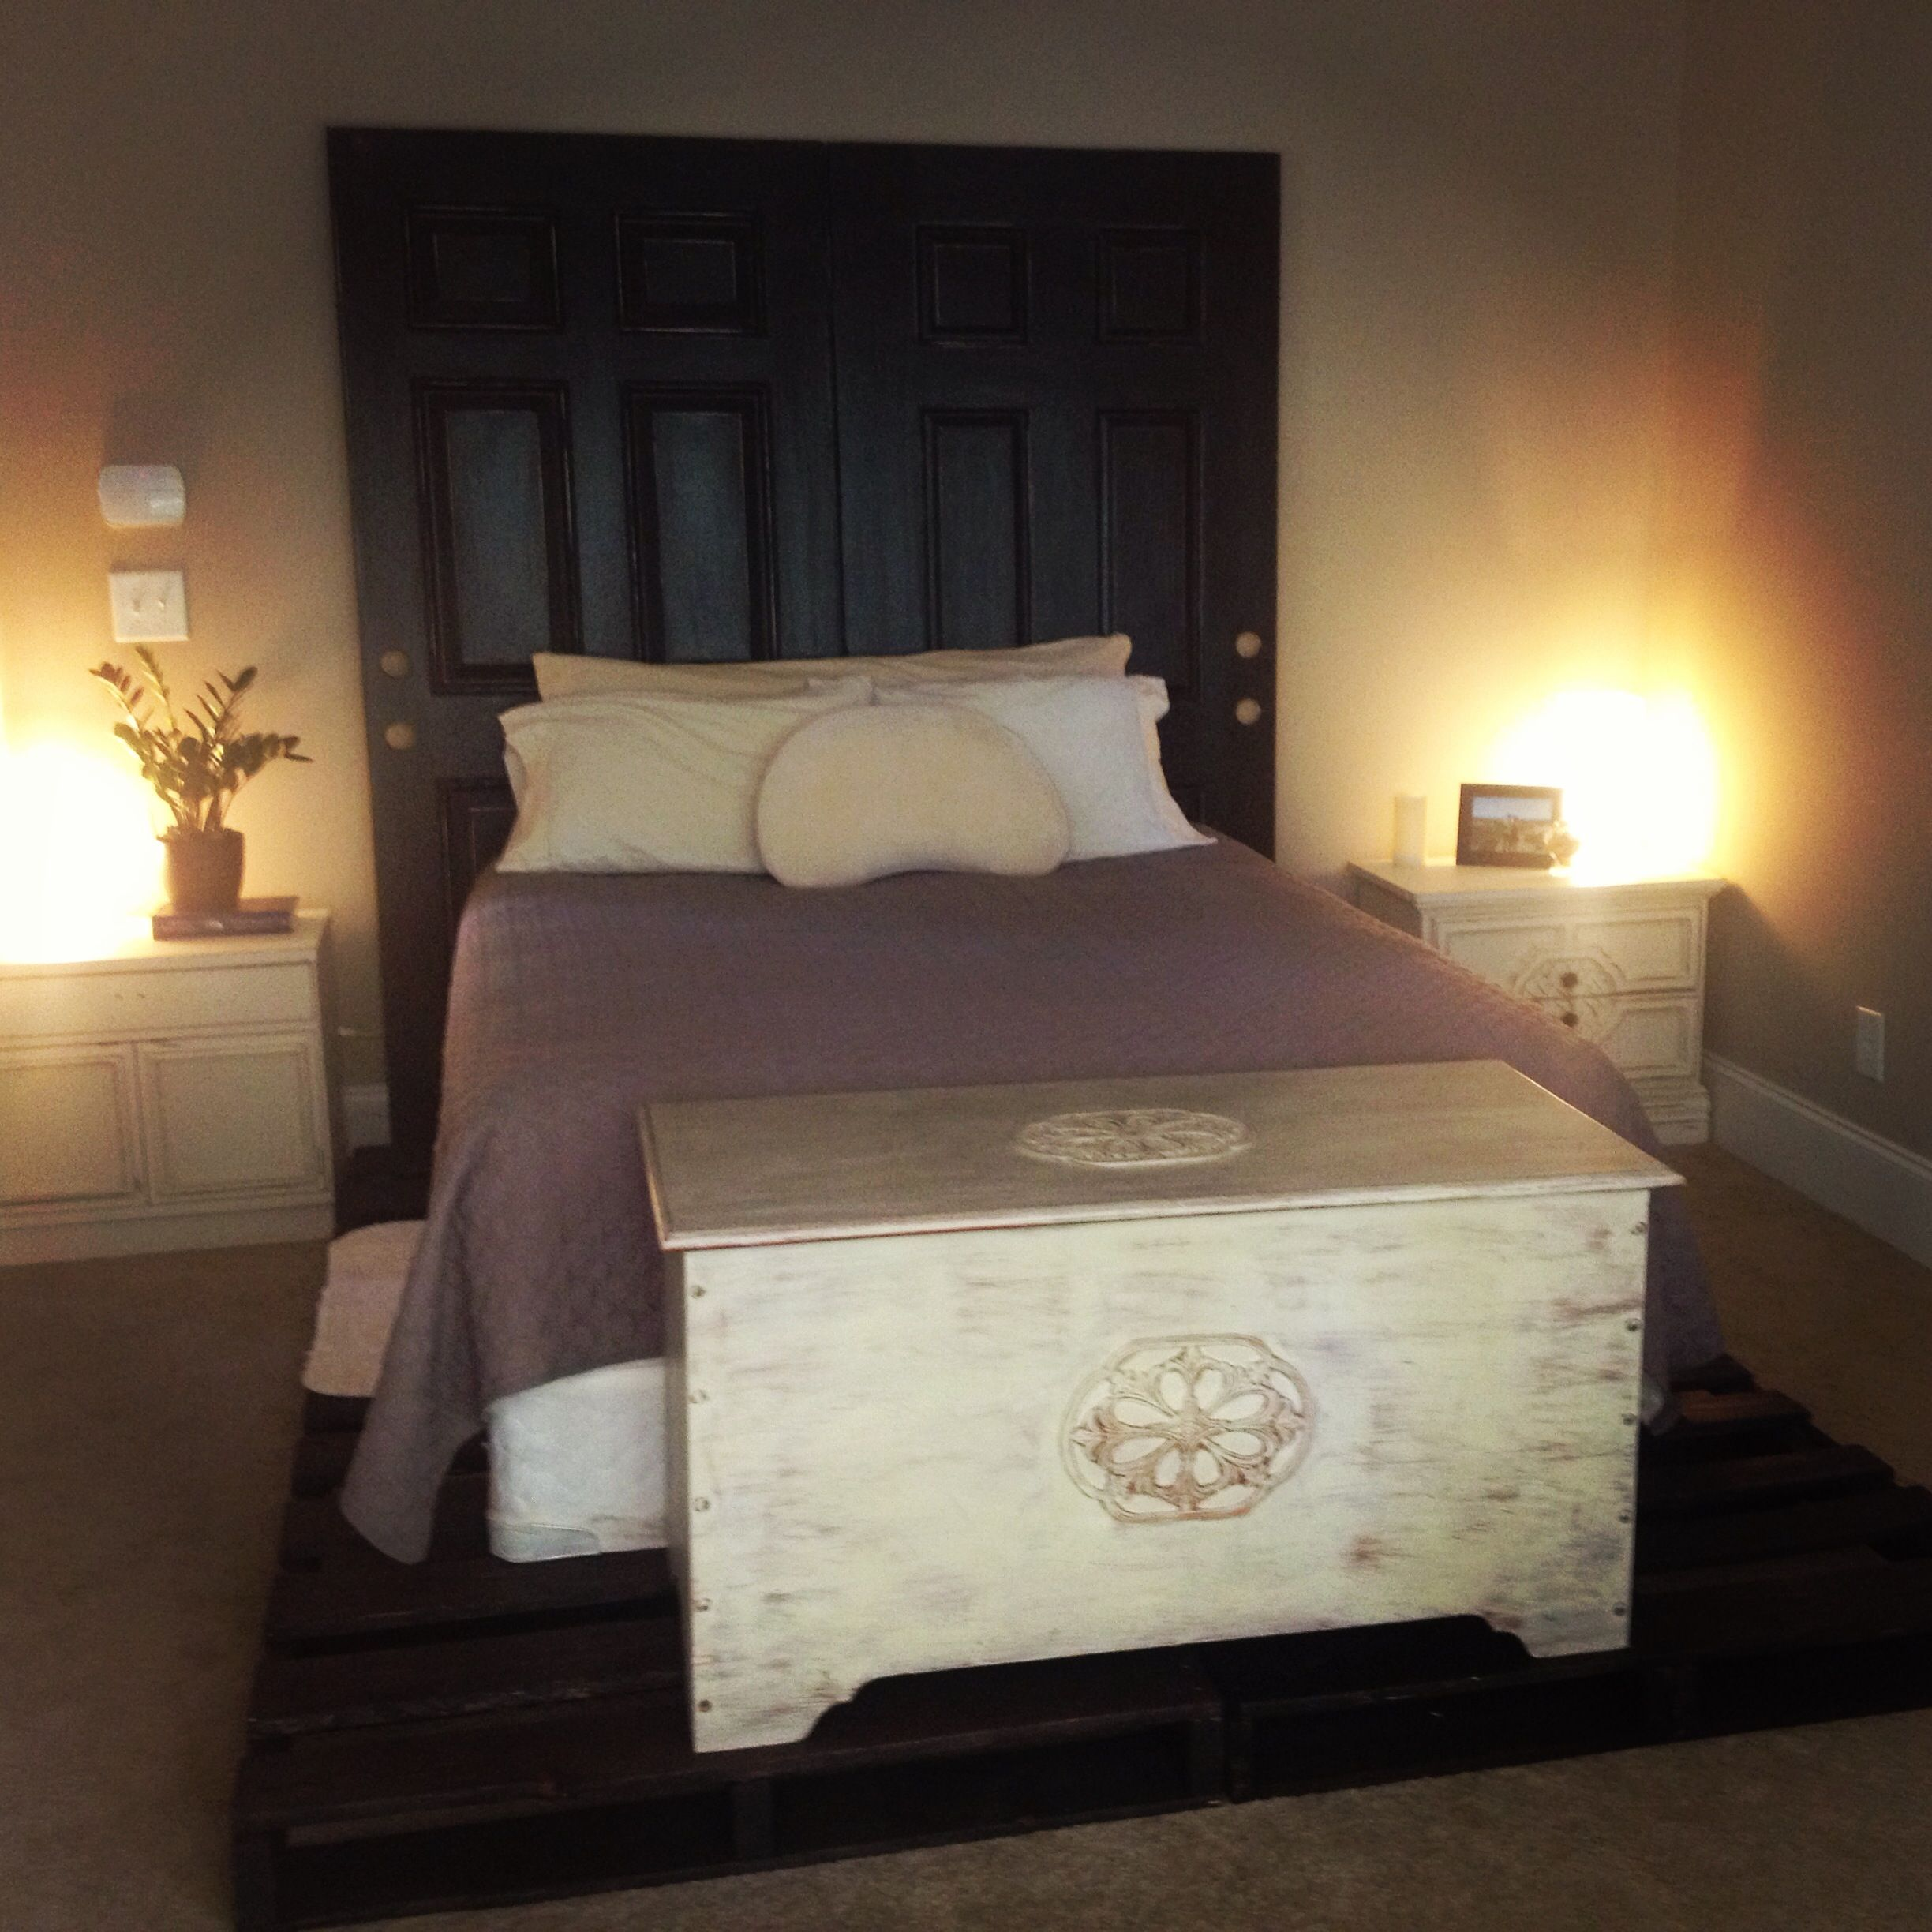 Pinterest Projects Pallet Bed Frame Pallets Sanded Down And Stained Kona Brown And Old Doors Headboard Doors S Pallet Bed Frames Bed Frame Pallet Bed Frame